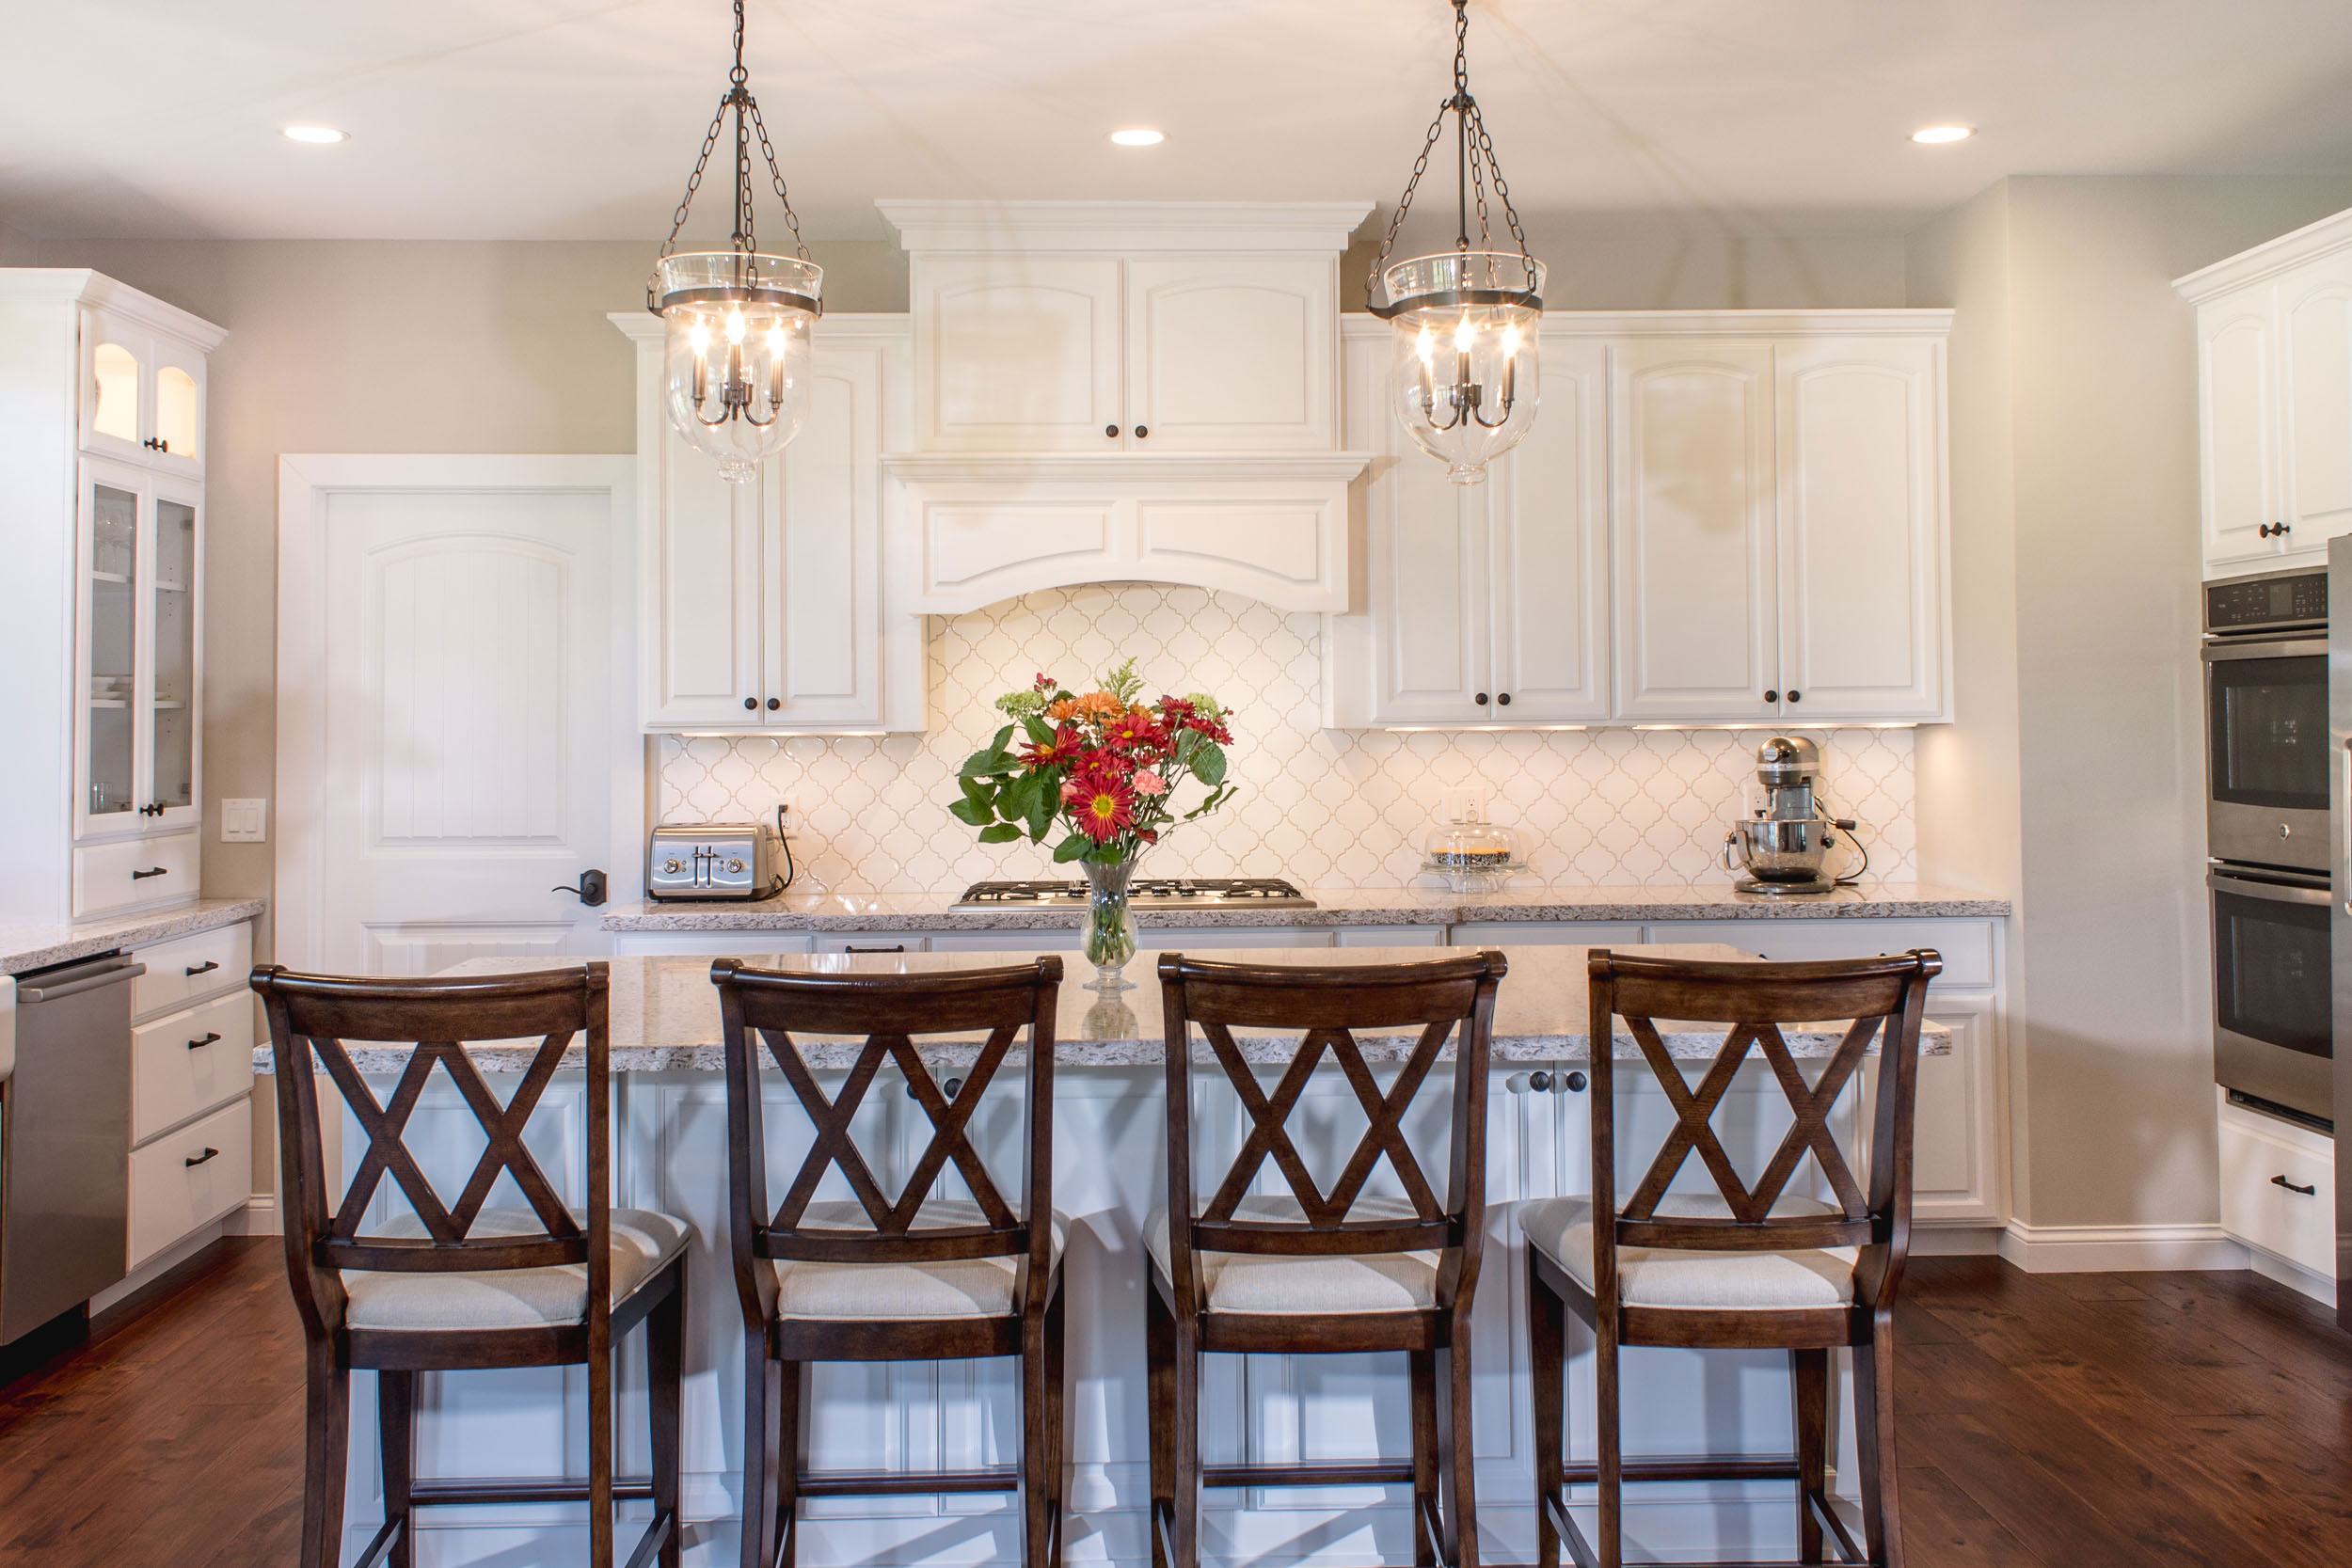 Auburn Ridge Cabinetry in Maple With Williamsburg Arch Doors And Williamsburg Slab drawer fronts